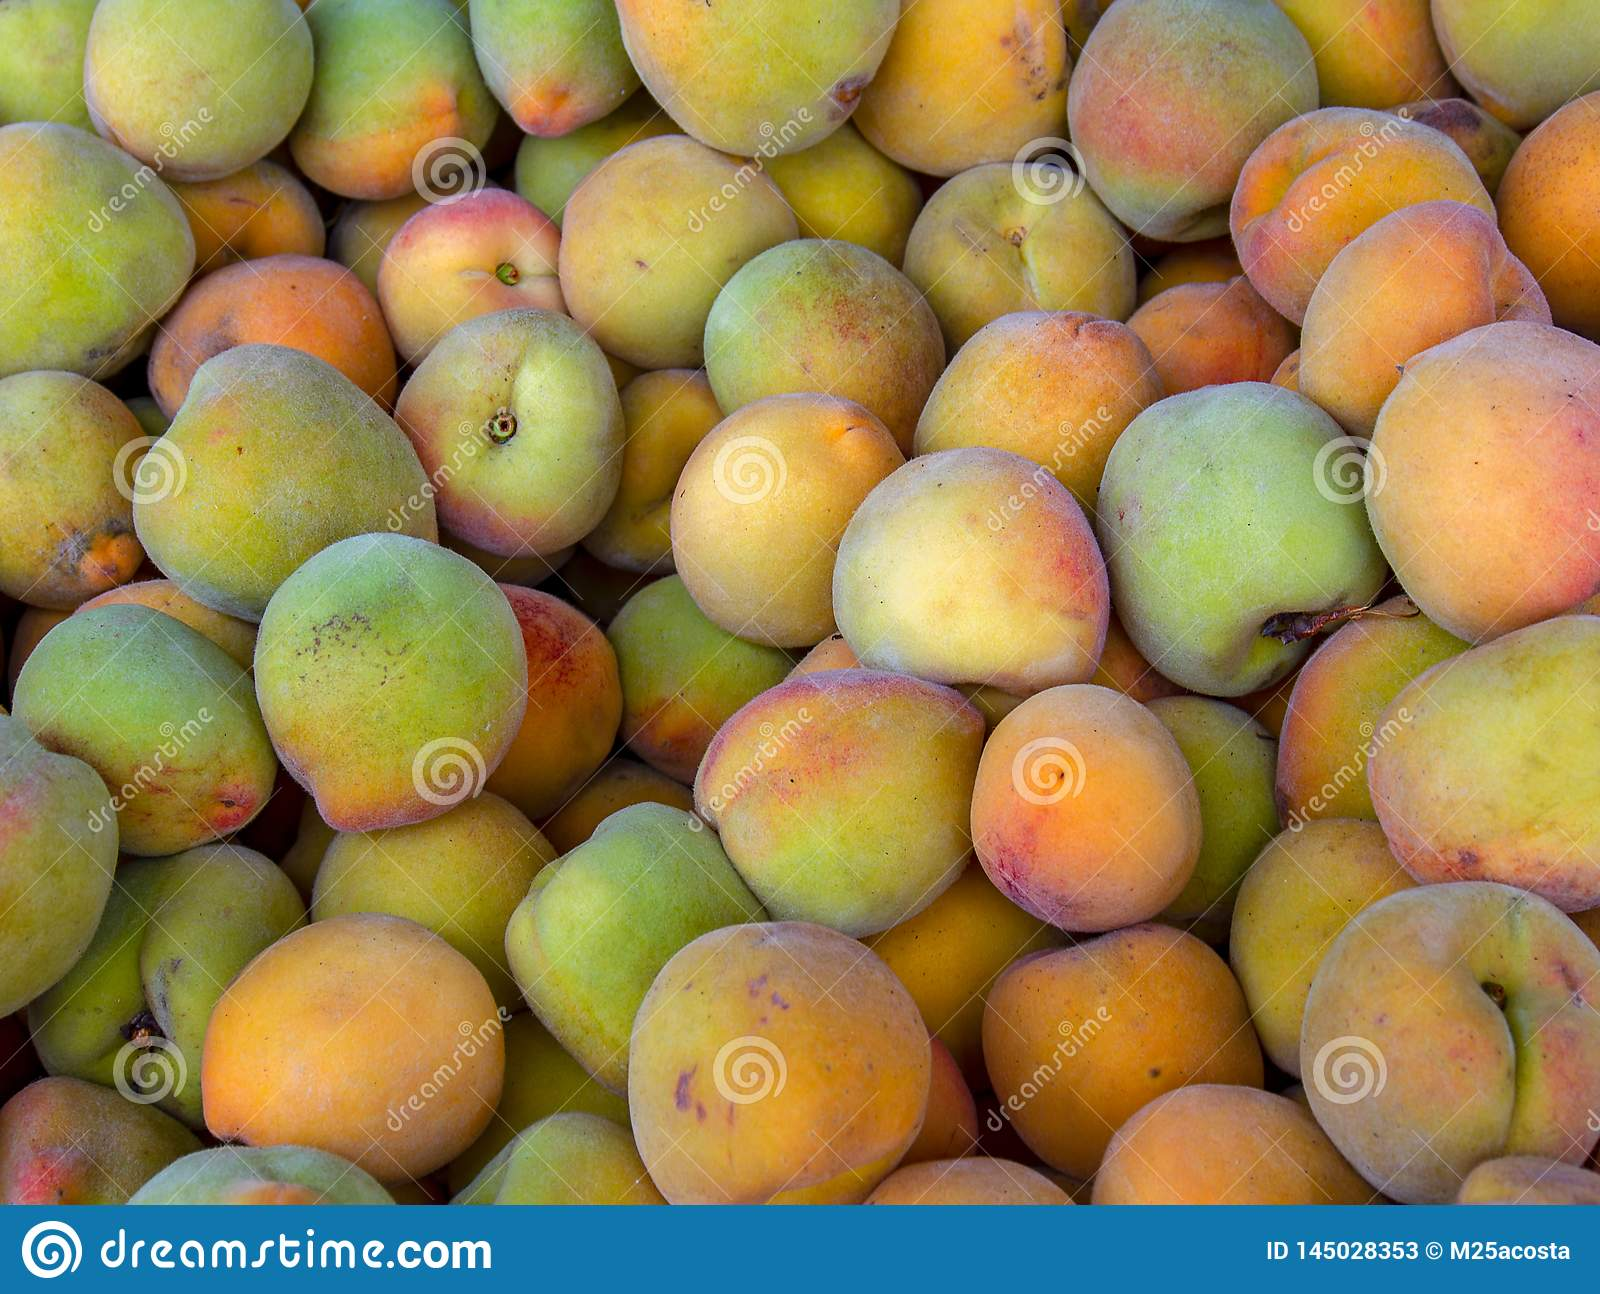 Heap of peaches in a market